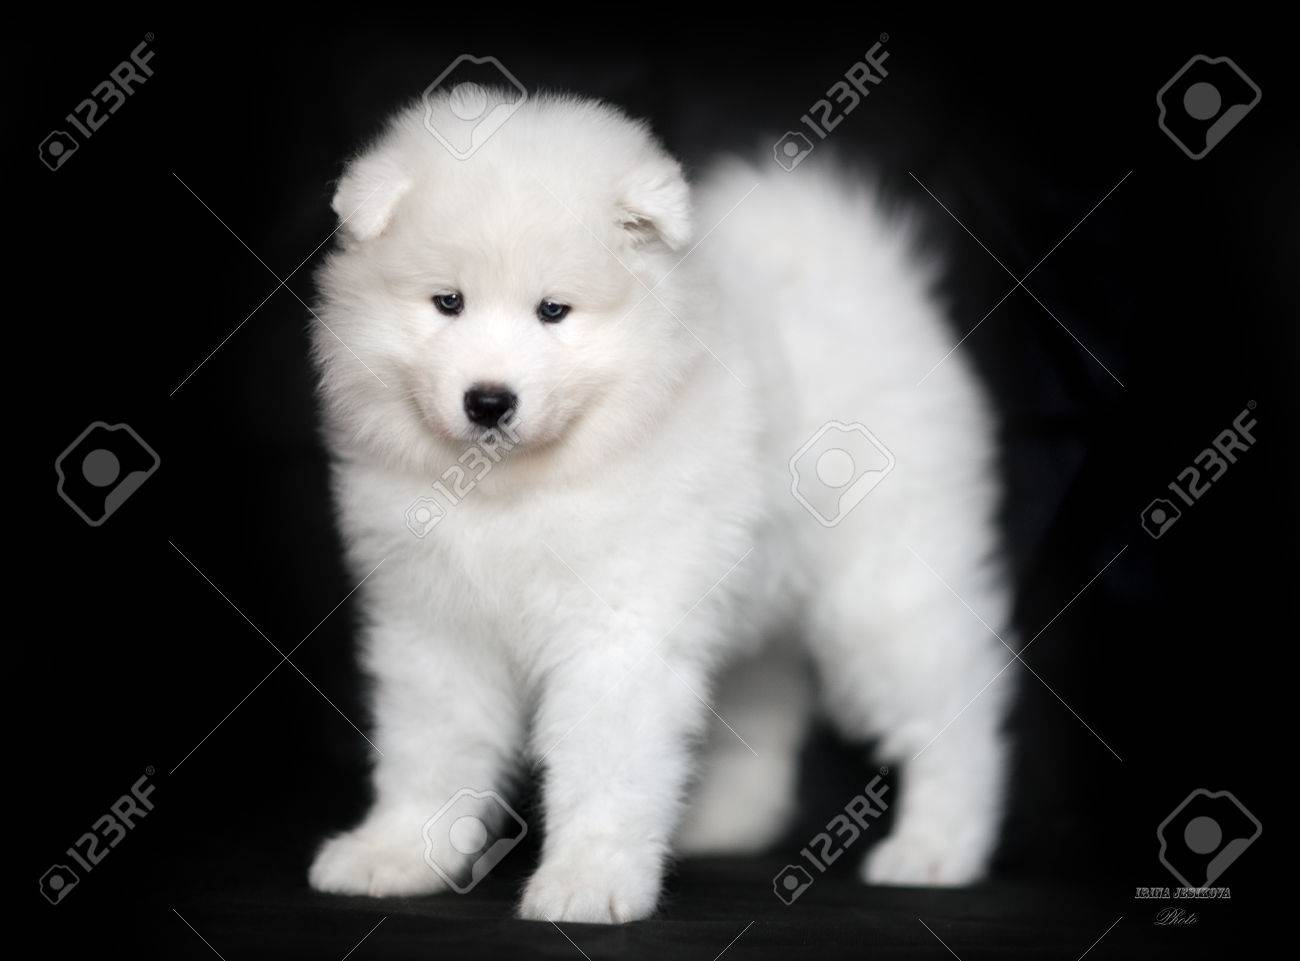 White Samoyed Puppy On A Black Background Stock Photo Picture And Royalty Free Image Image 71798040